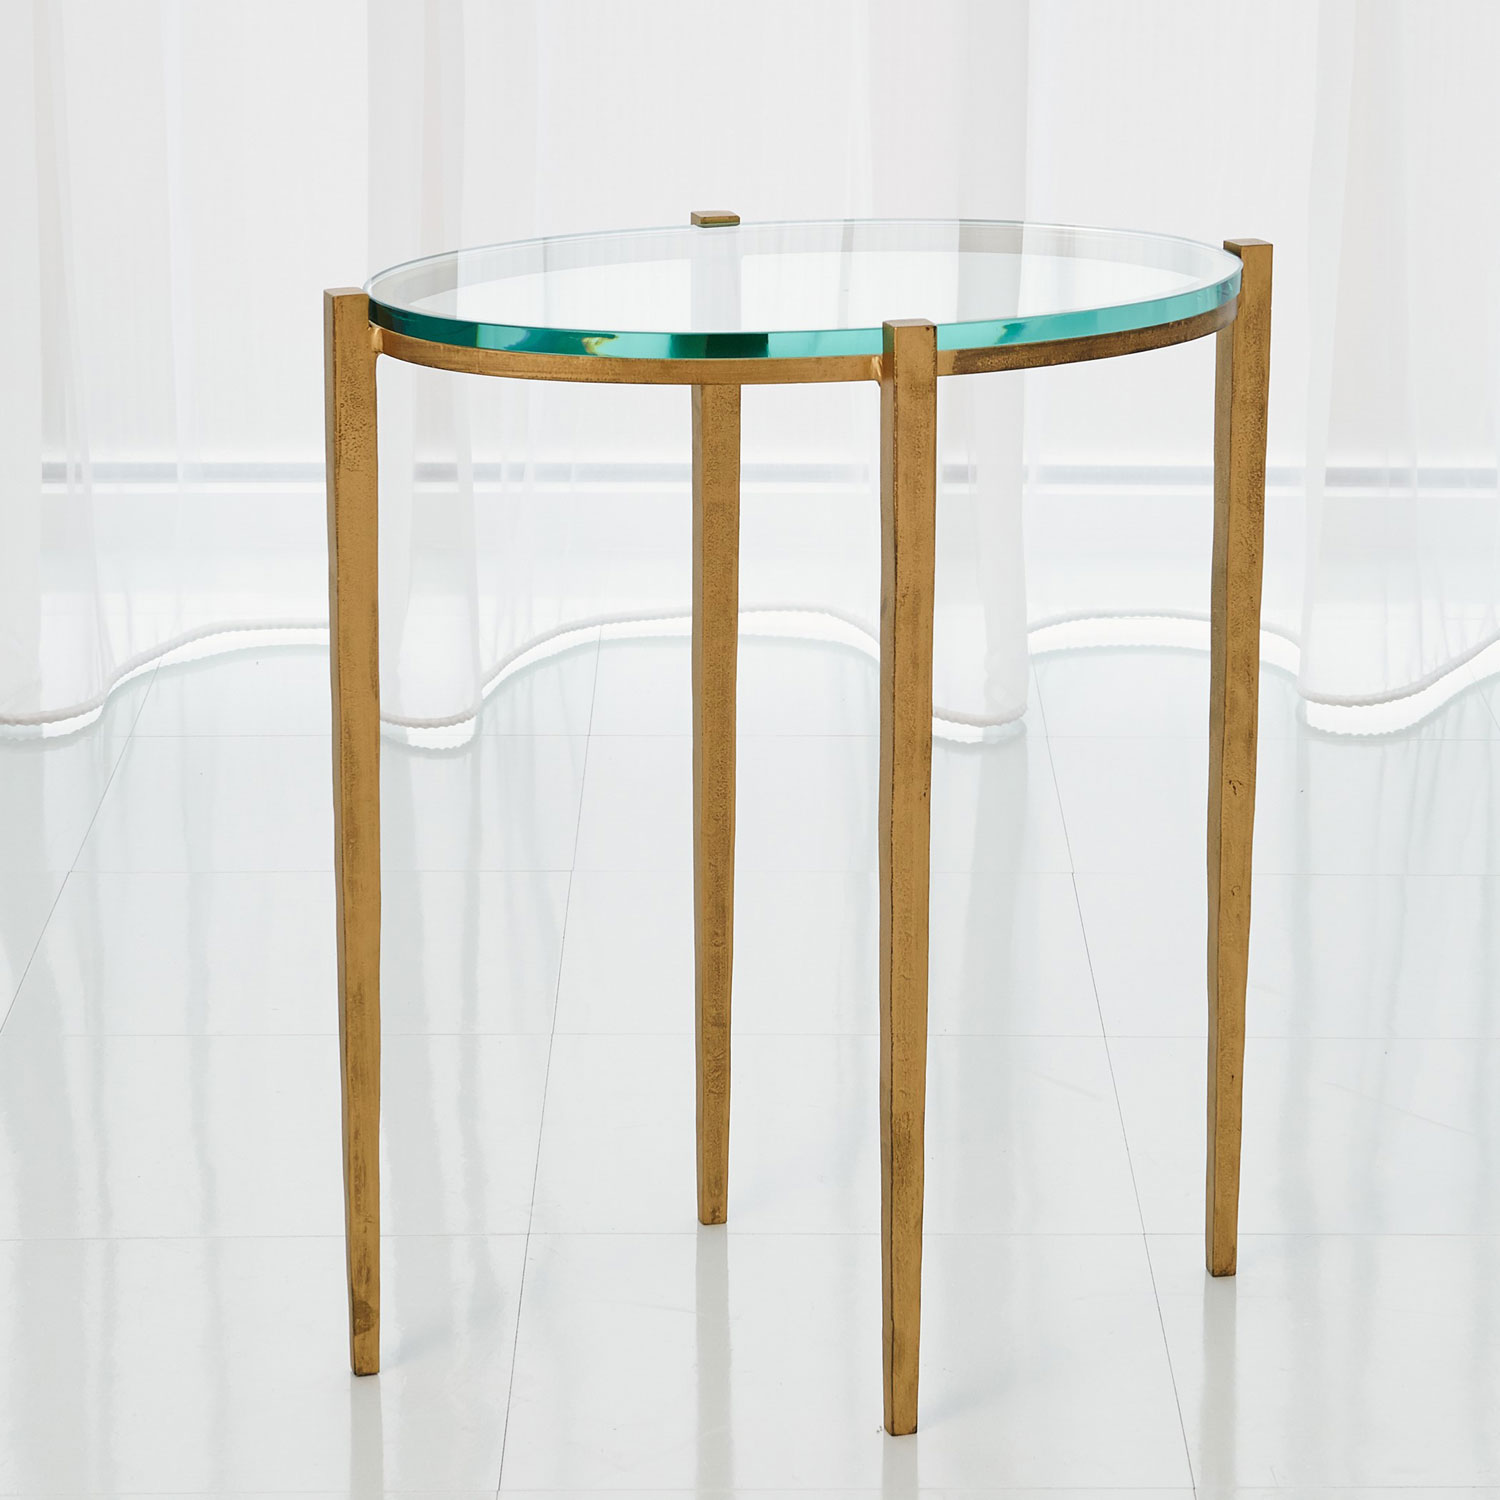 global views studio petite oval antique gold accent table rustic metal and wood end tables distressed gray tall occasional drop leaf folding cement base round tablecloth pattern